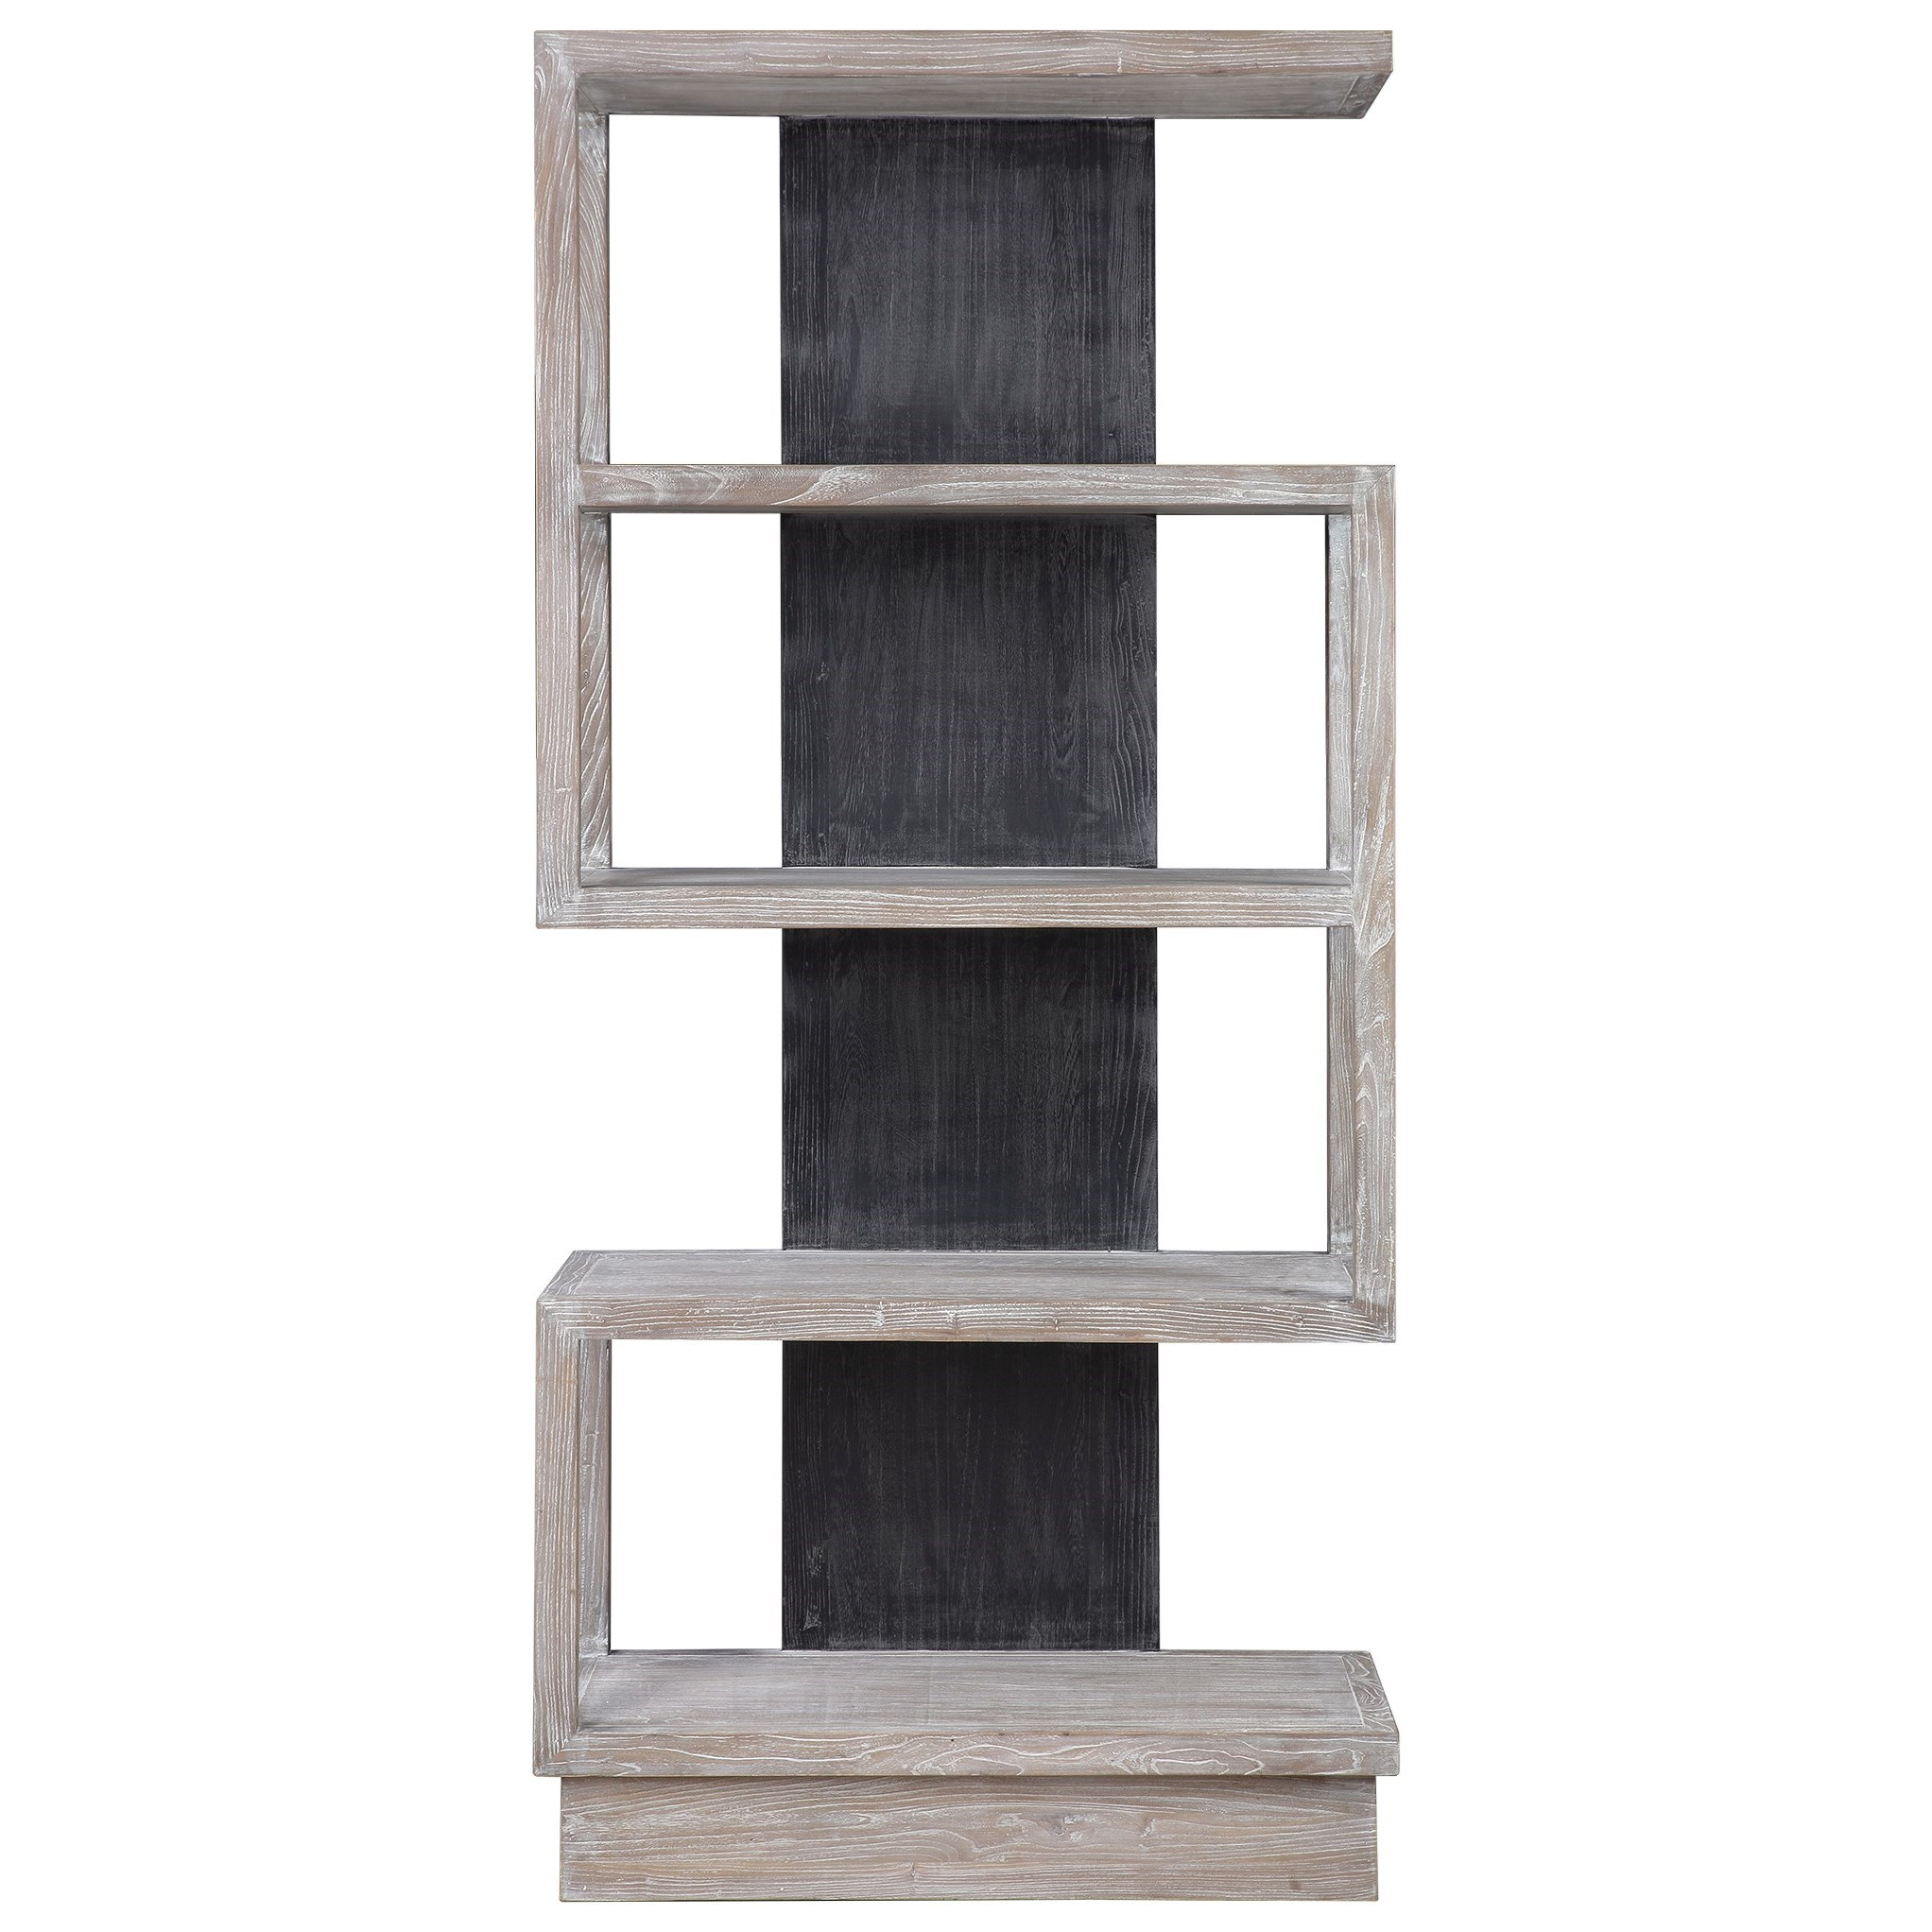 Accent Furniture - Bookcases Nicasia Modern Etagere by Uttermost at Factory Direct Furniture